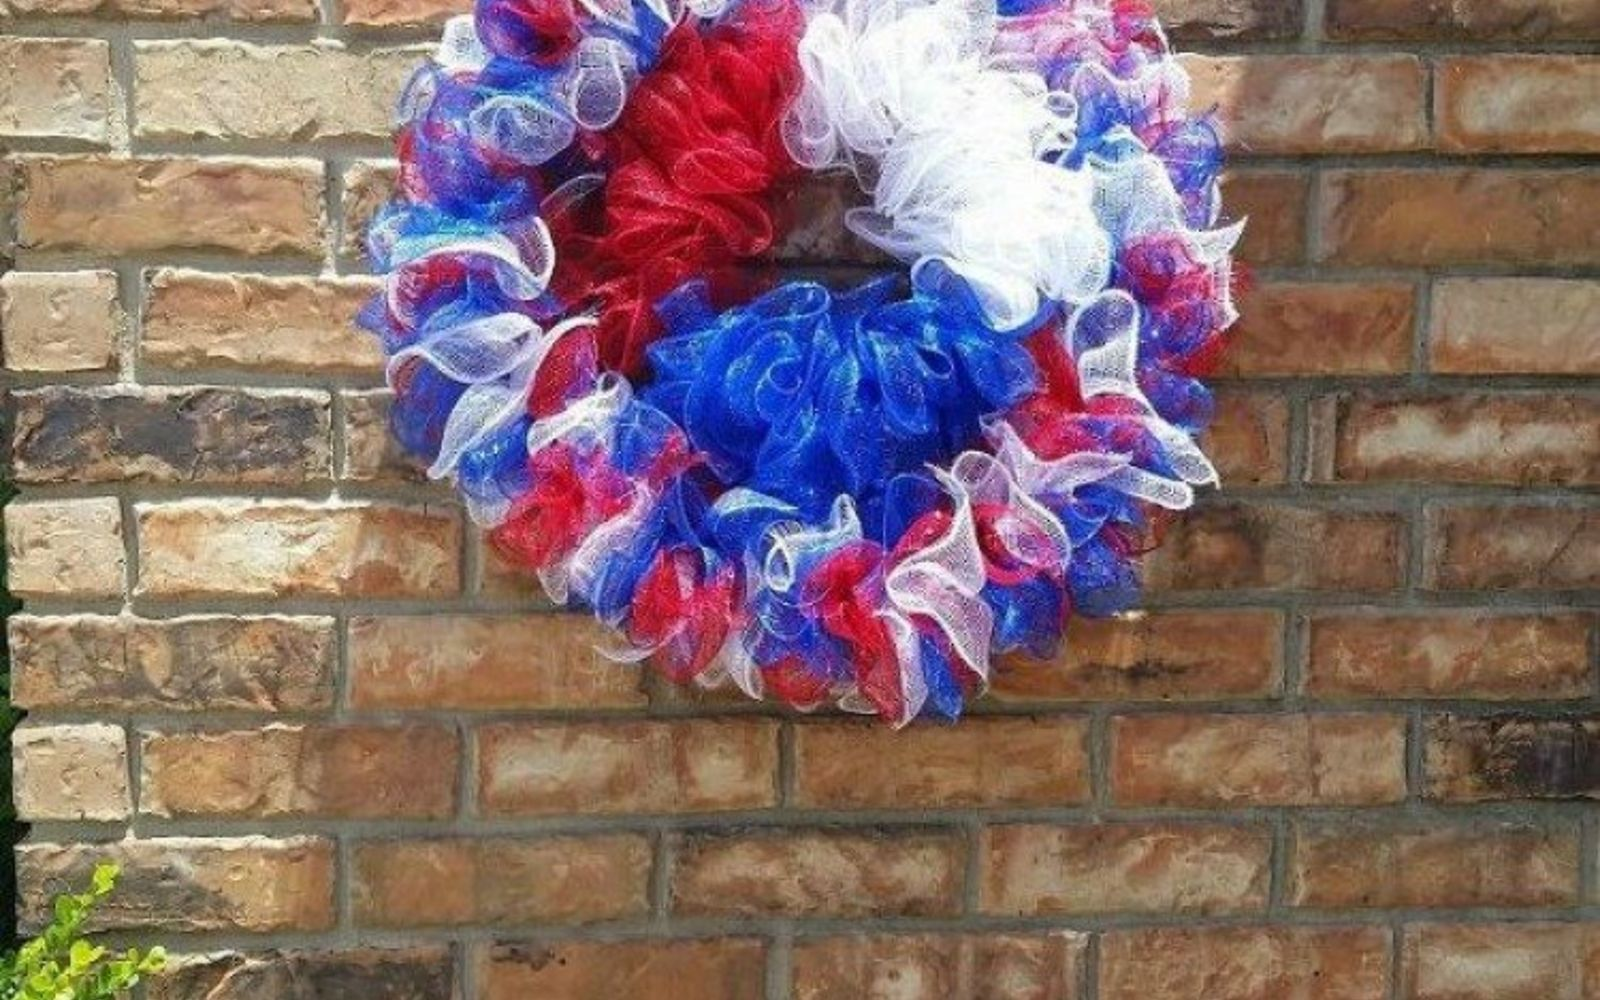 s 17 tricks to make a gorgeous wreath in half the time, crafts, wreaths, Use a dry cleaning hanger for the form